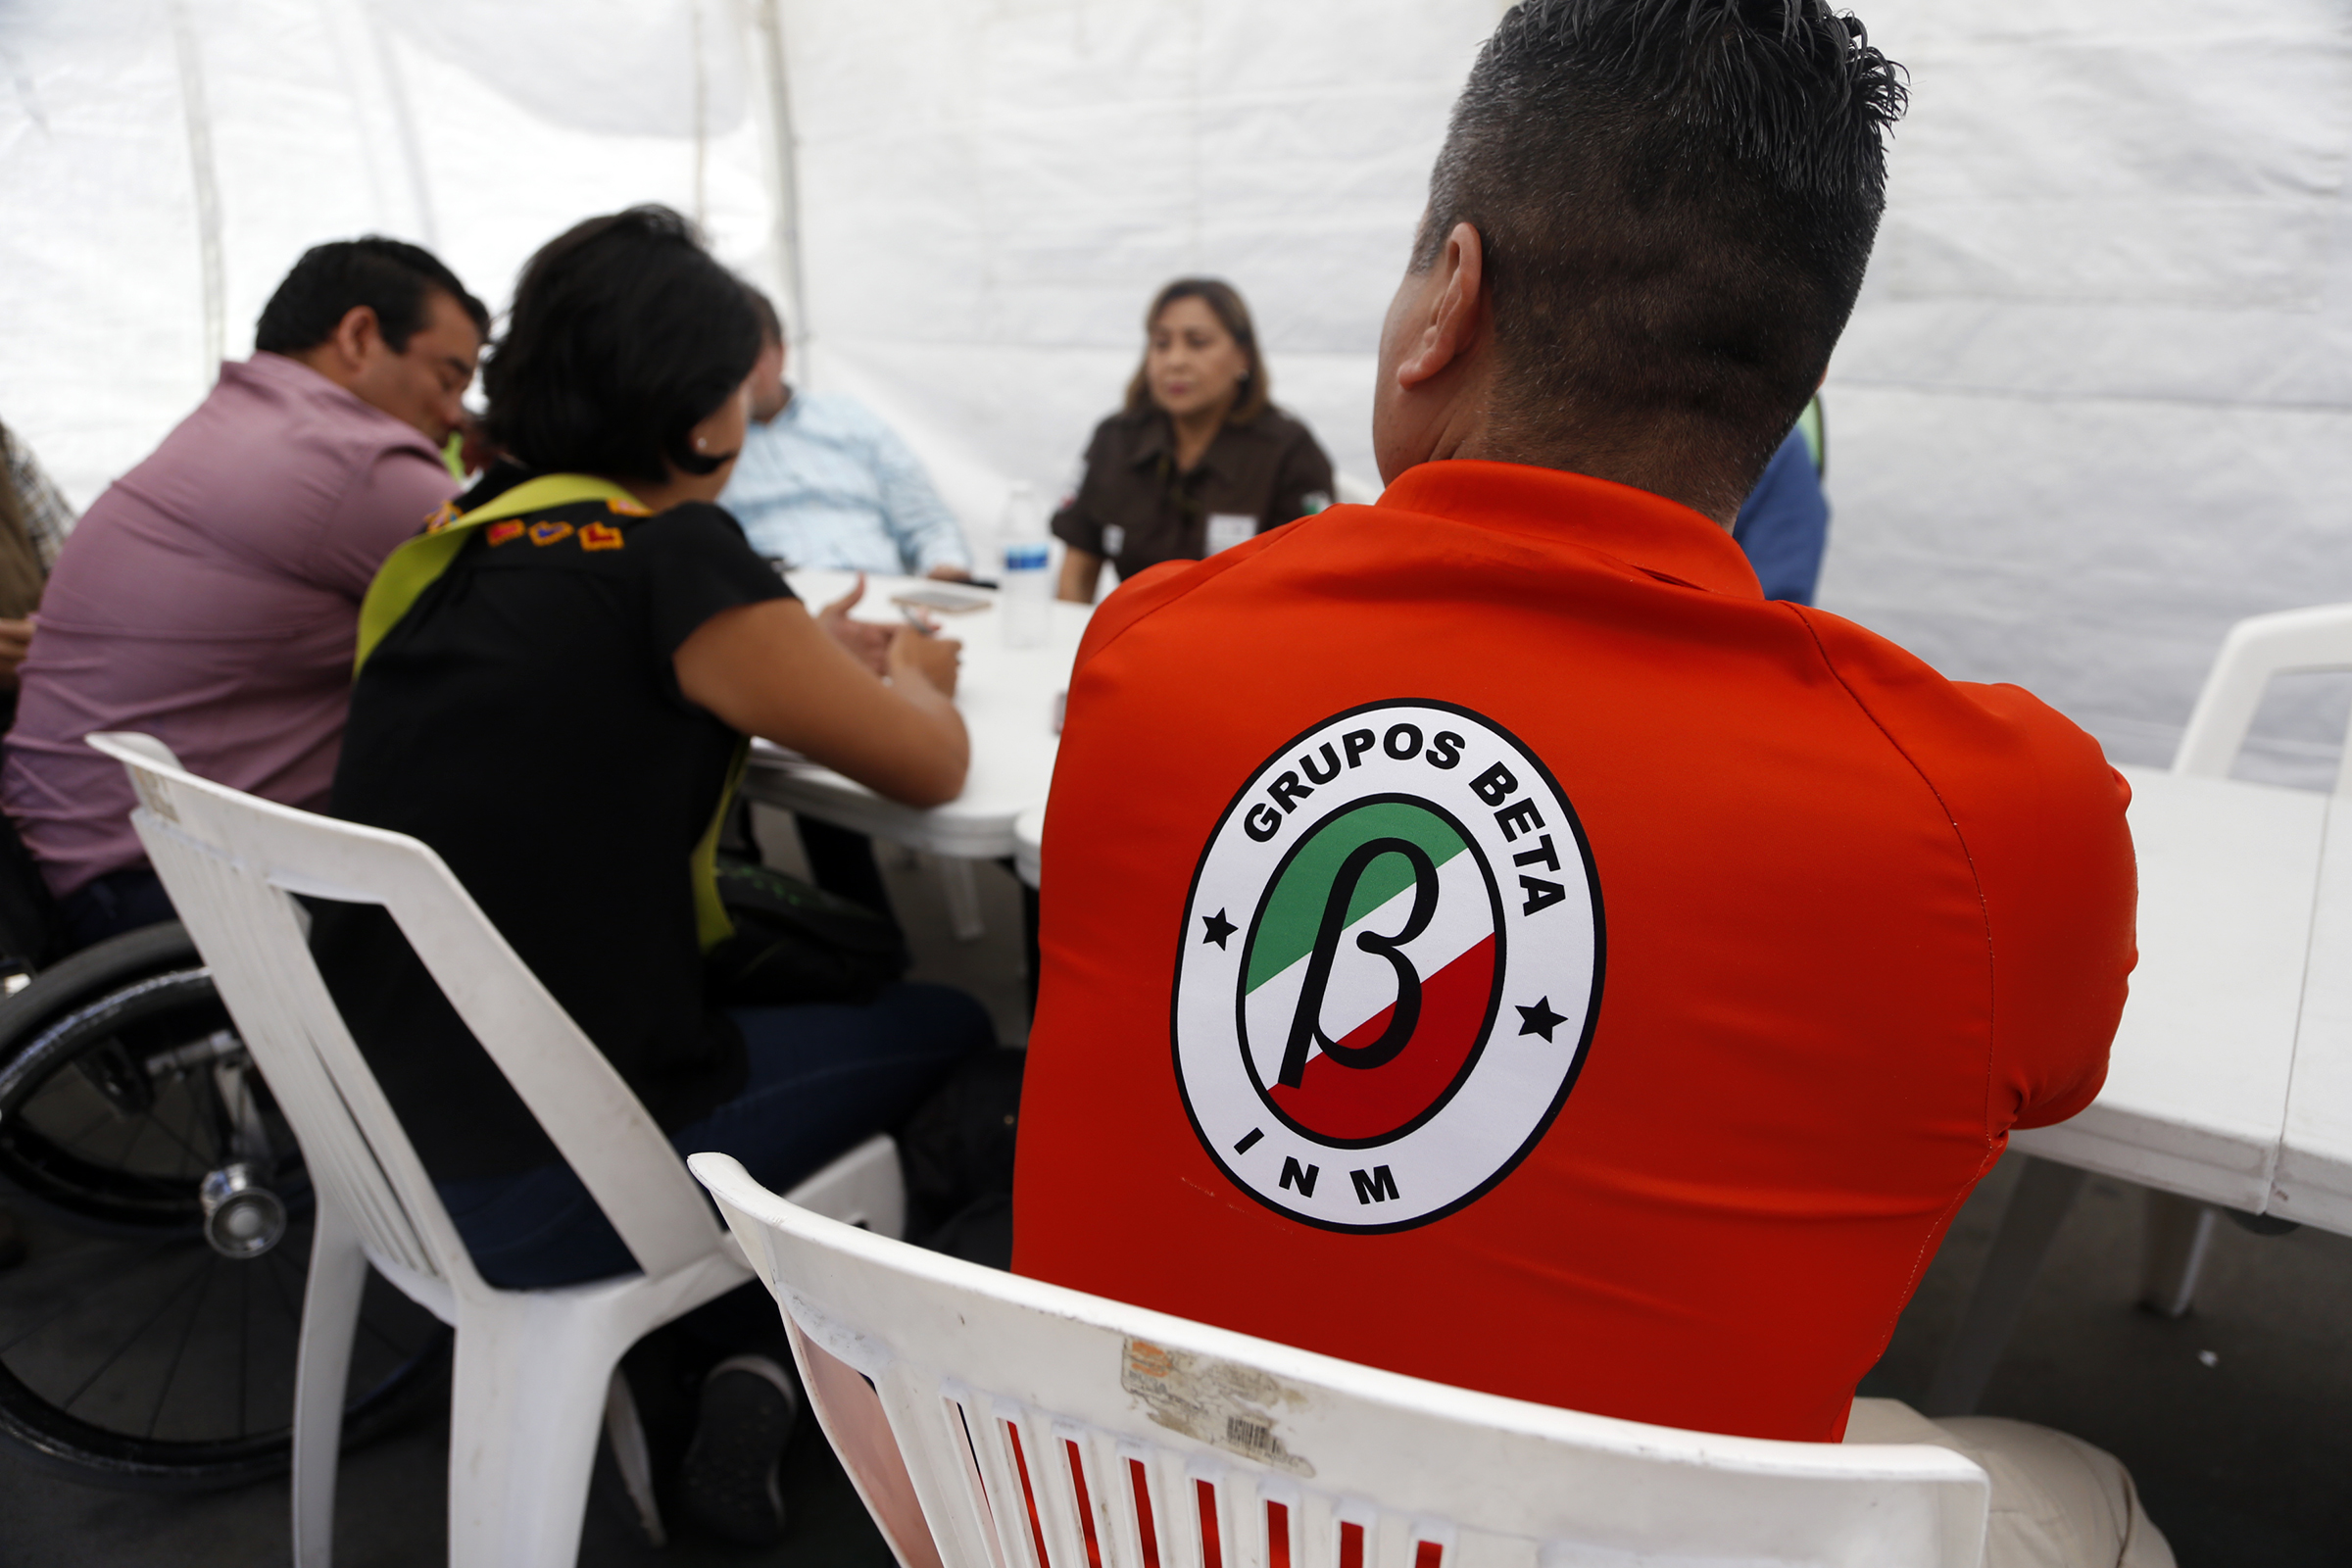 April 27, 2018 - Tijuana, Baja California, Mexico - Tijuana, Baja California, Mexico April 27th, 2018 | Various organizations meet outside Juventud 2000 shelter in Zona Norte. They discus the logistics for Sunday. A member of Grupo Beta, a border unit established by the Mexican government to protect migrants as they make their way north to the U.S. They participate in the meeting. | Alejandro Tamayo ¬© The San Diego Union Tribune 2018 (Credit Image: © Alejandro Tamayo/San Diego Union-Tribune via ZUMA Wire)